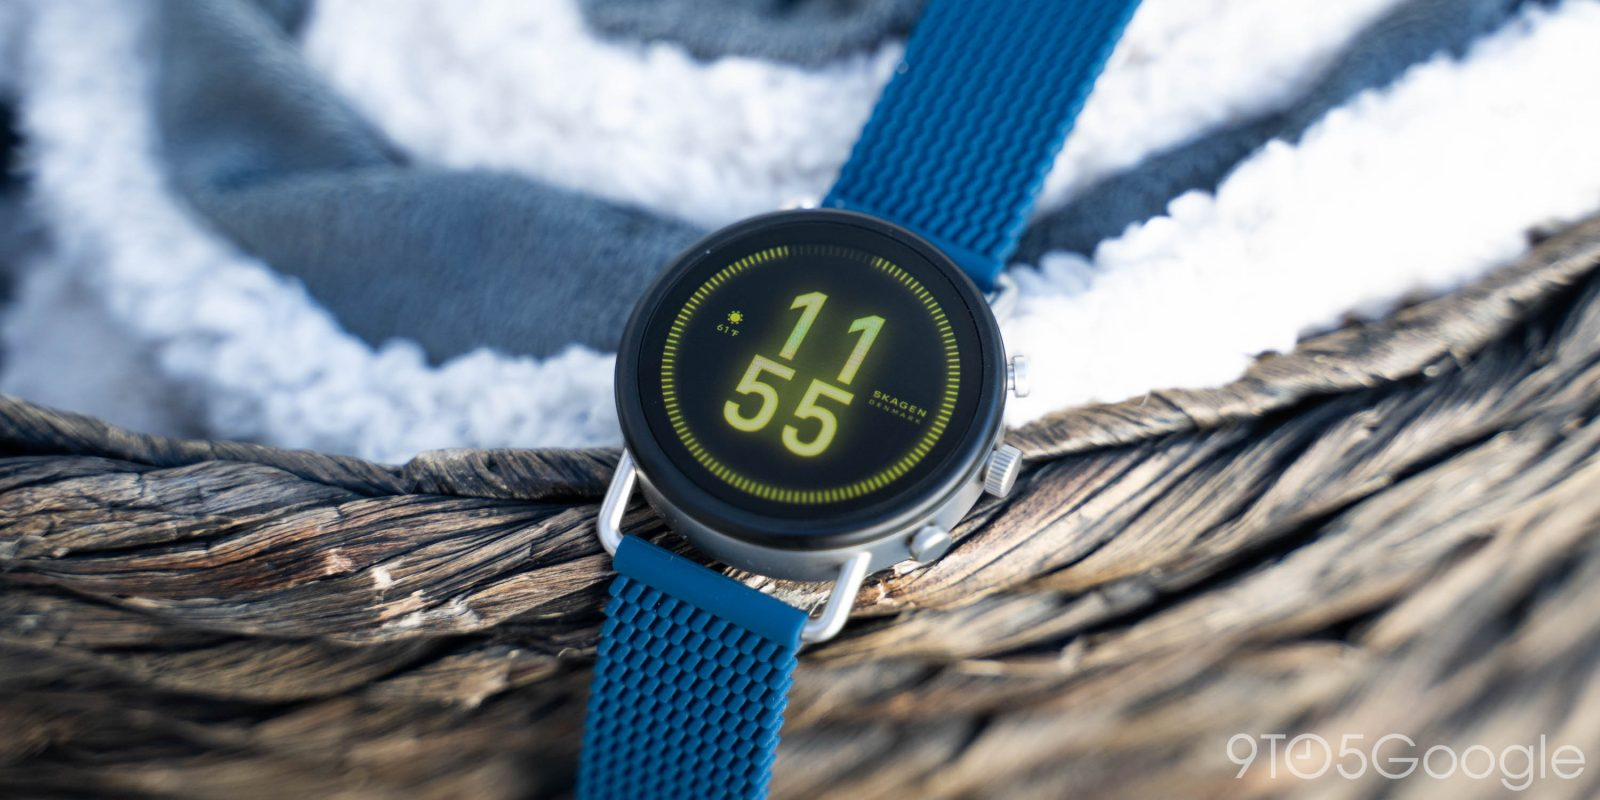 Fossil watches are getting Wear OS H-MR2 update - 9to5Google